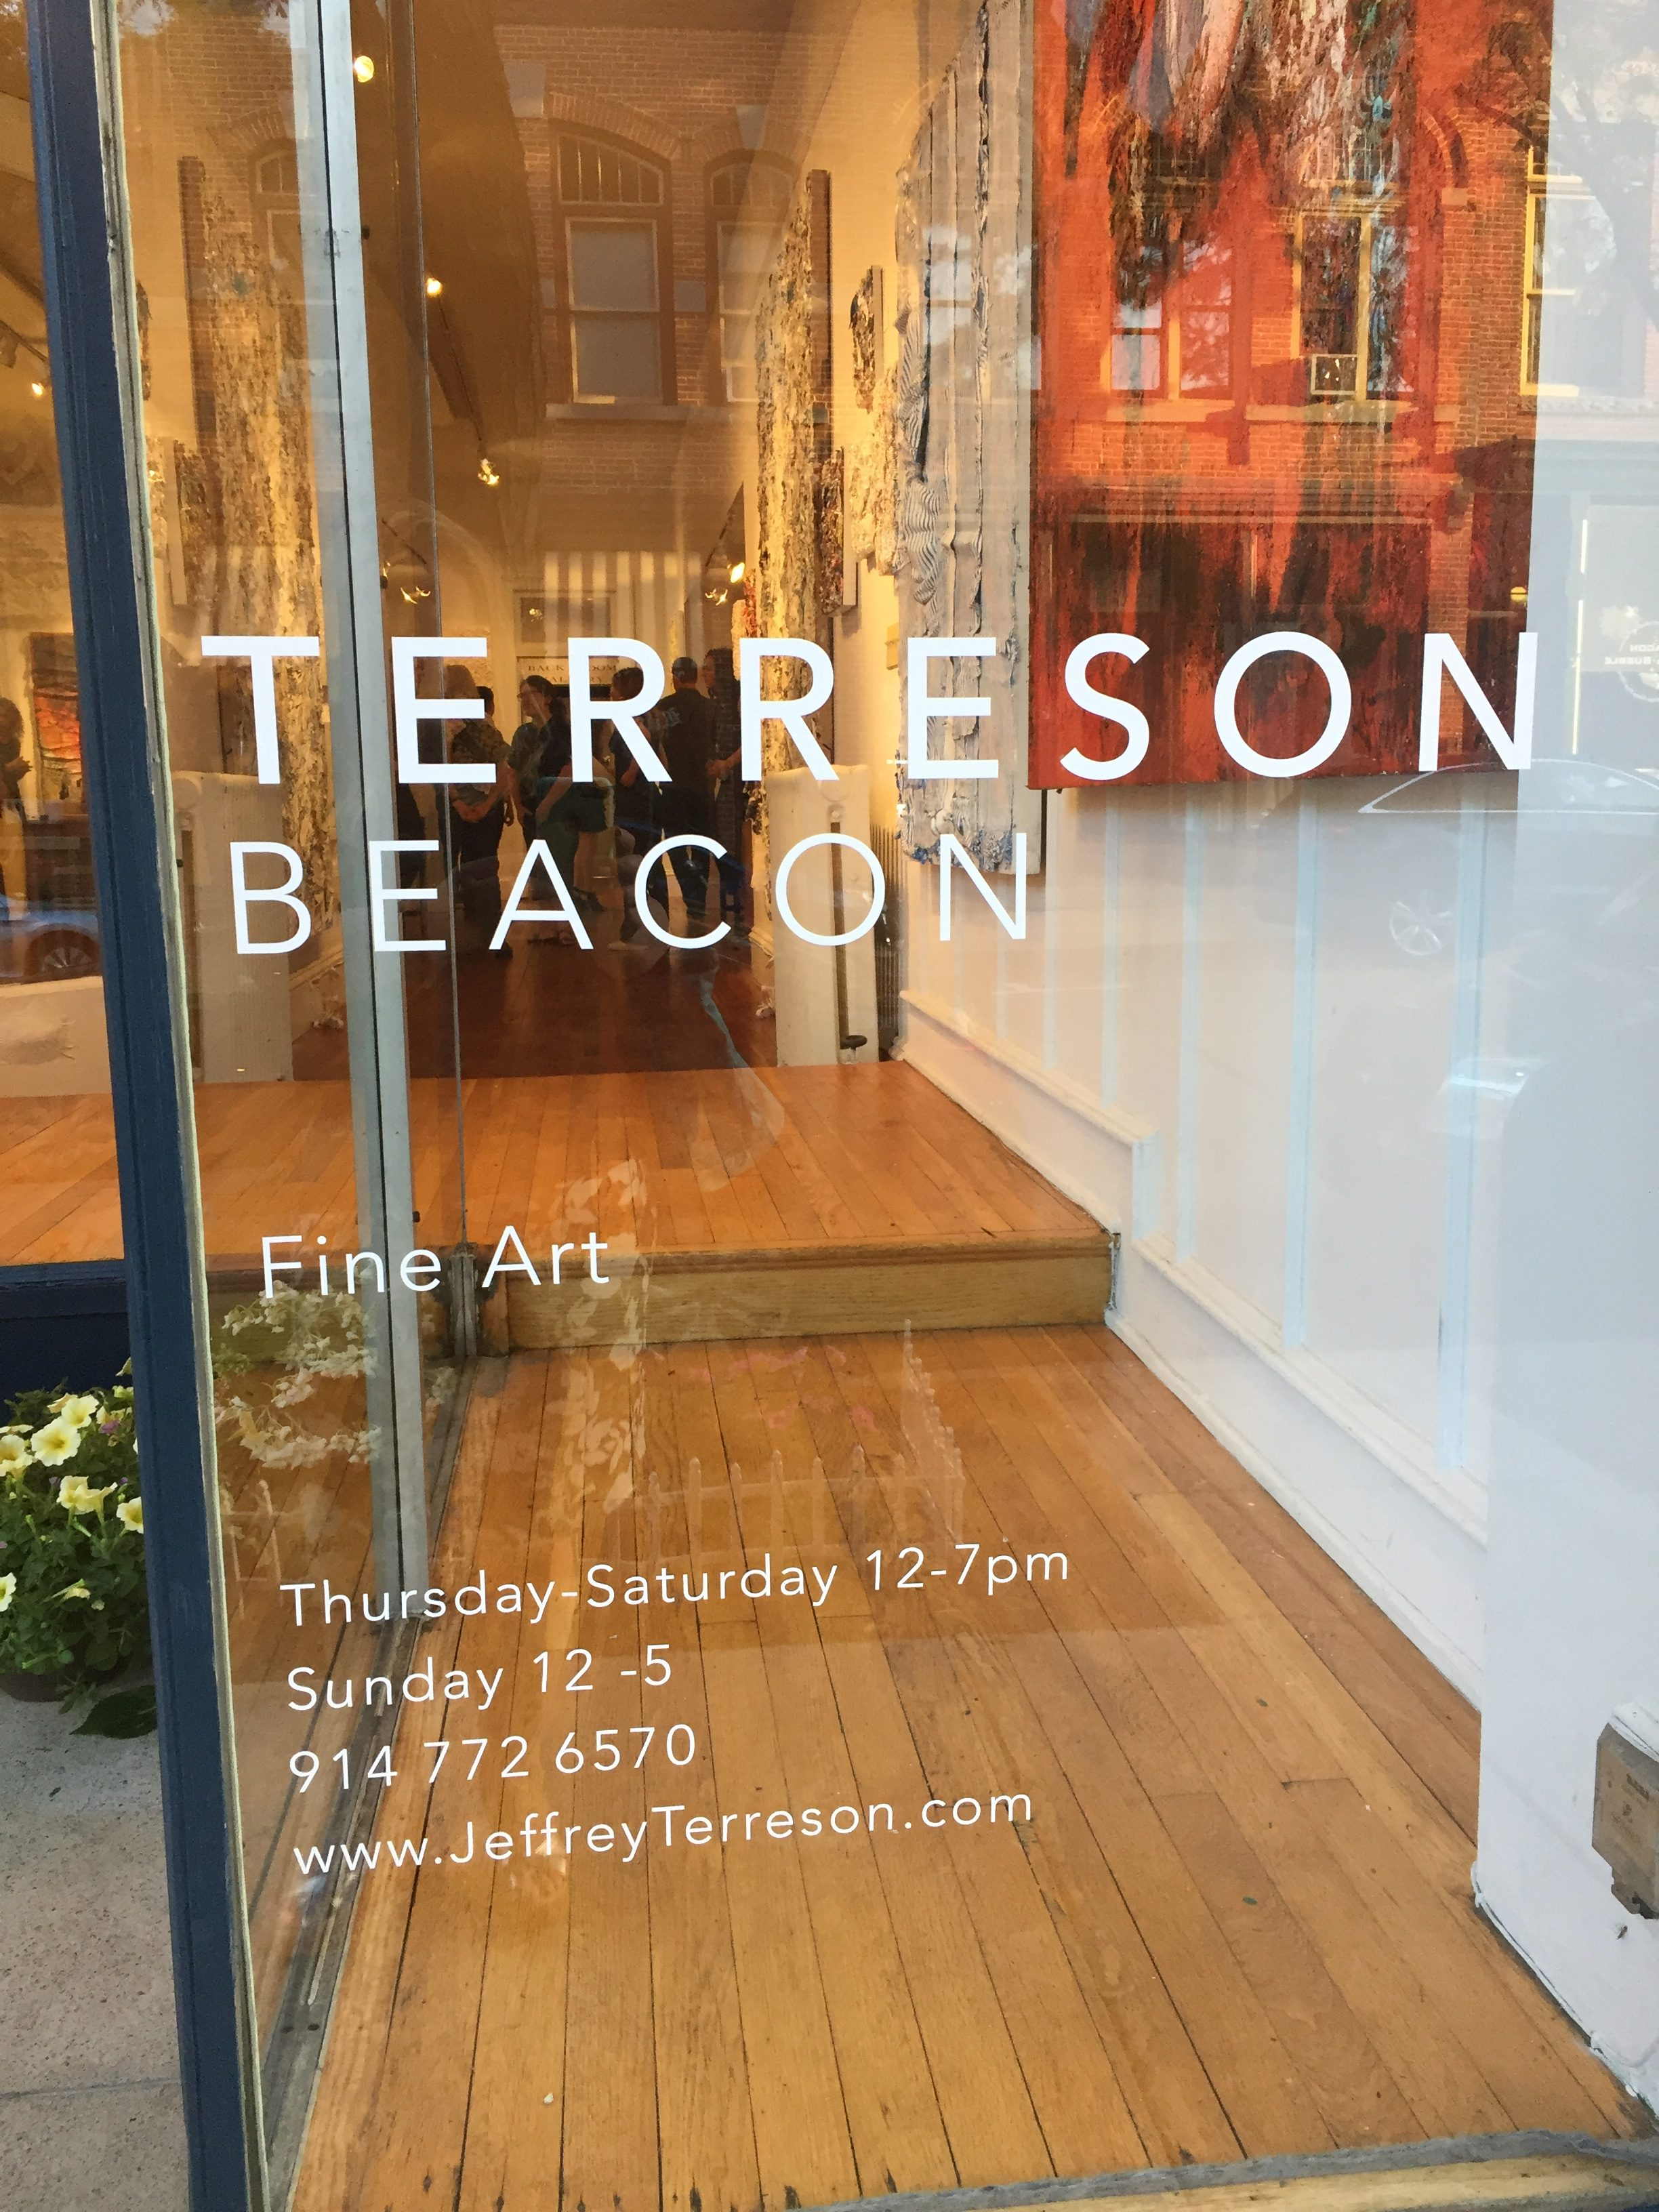 Artist Jeffrey Terreson's new gallery in Beacon, N.Y. is another good reason to visit the city. Photo credit: M. Ciavardini